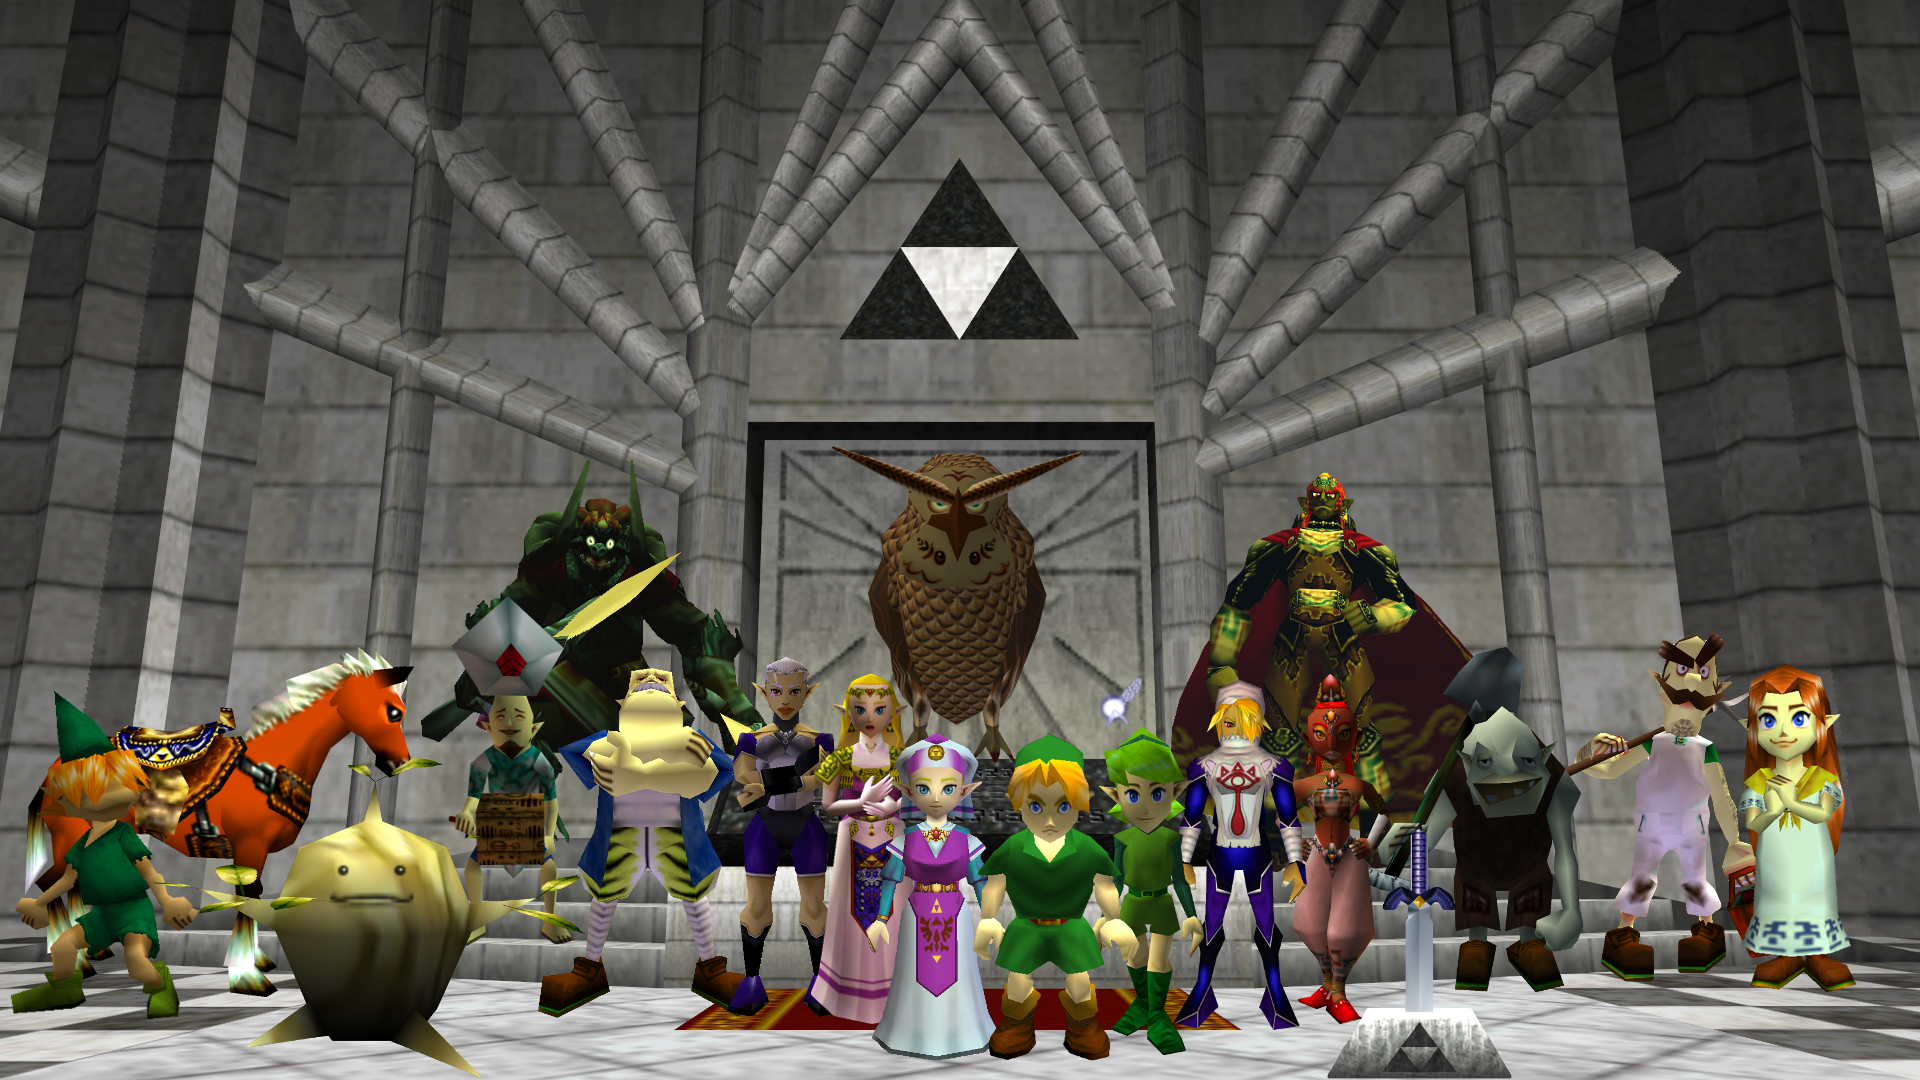 the legend of zelda: ocarina of time images ocarina of time